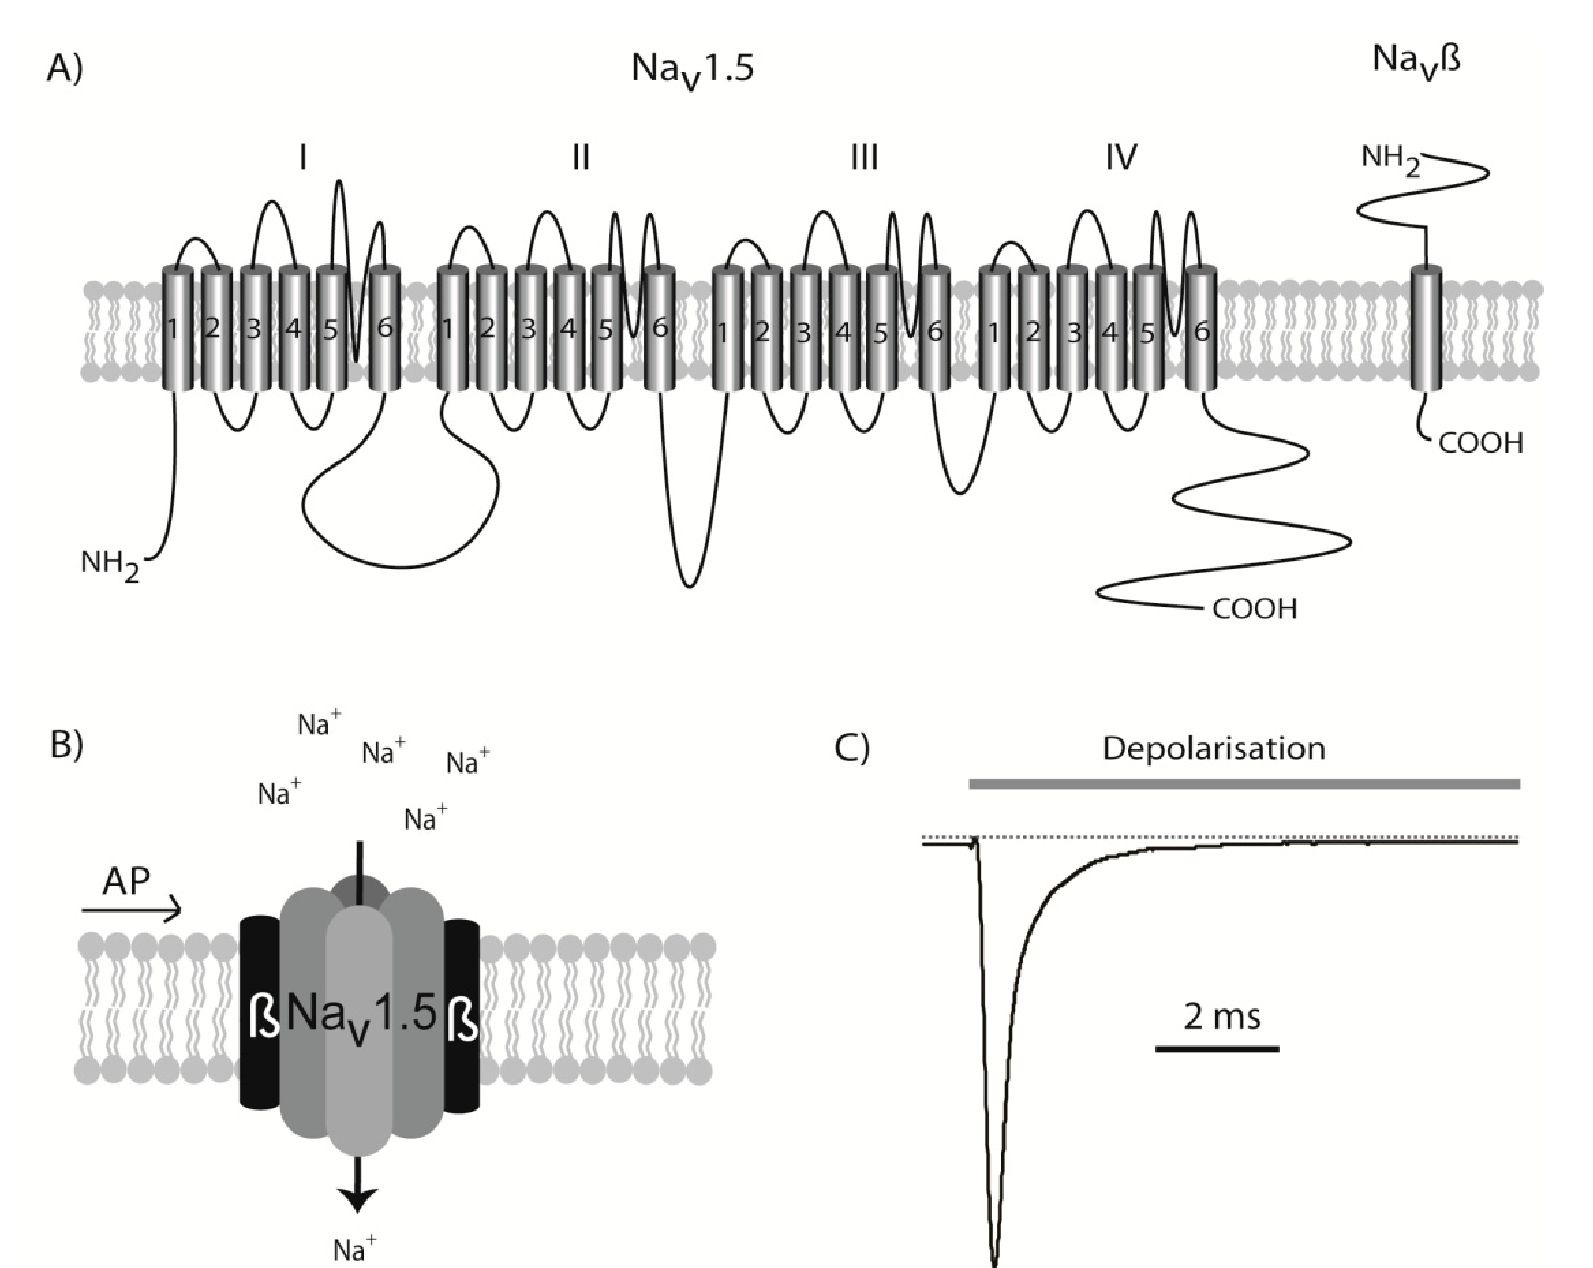 The cardiac Nav1.5 sodium channel. A) The SCN5A gene is transcribed into the large Nav1.5 protein containing 24 transmembrane domains. B) This protein can fold up into a functional channel, but it is believed to be modulated by the Navp one-transmembrane spanning p-subunits in vivo. When an action potential (AP) induces a depolarisation of the membrane, Nav1.5 is activated and a transient influx of sodium begins. C) Illustration of the current conducted through Nav1.5 channels following a depolarising pulse. The channels will activate very quickly, but as soon as the action potential has commenced a fast inactivation is also initiated. After approximately 10 milliseconds, only a small fraction of the channels will be open.